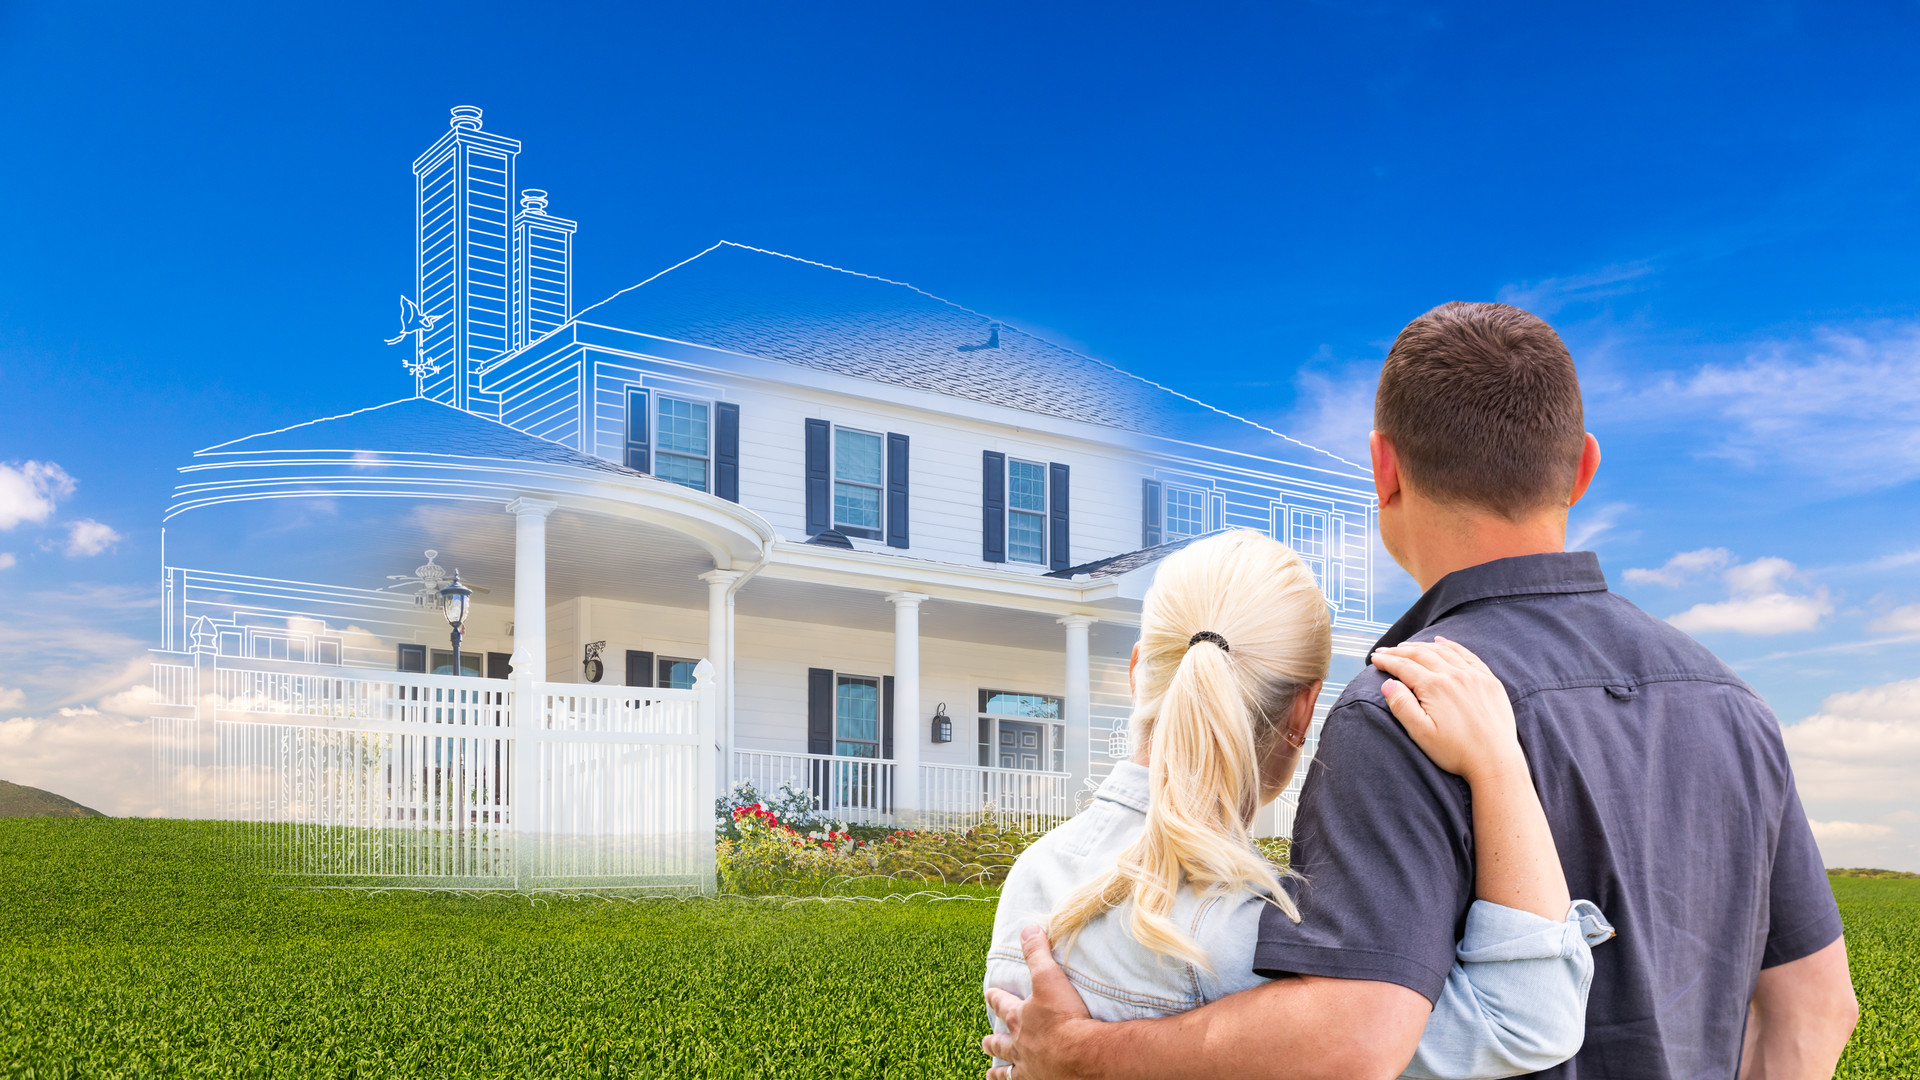 Couple Facing Ghosted House Drawing and Photo Over Green Landscape